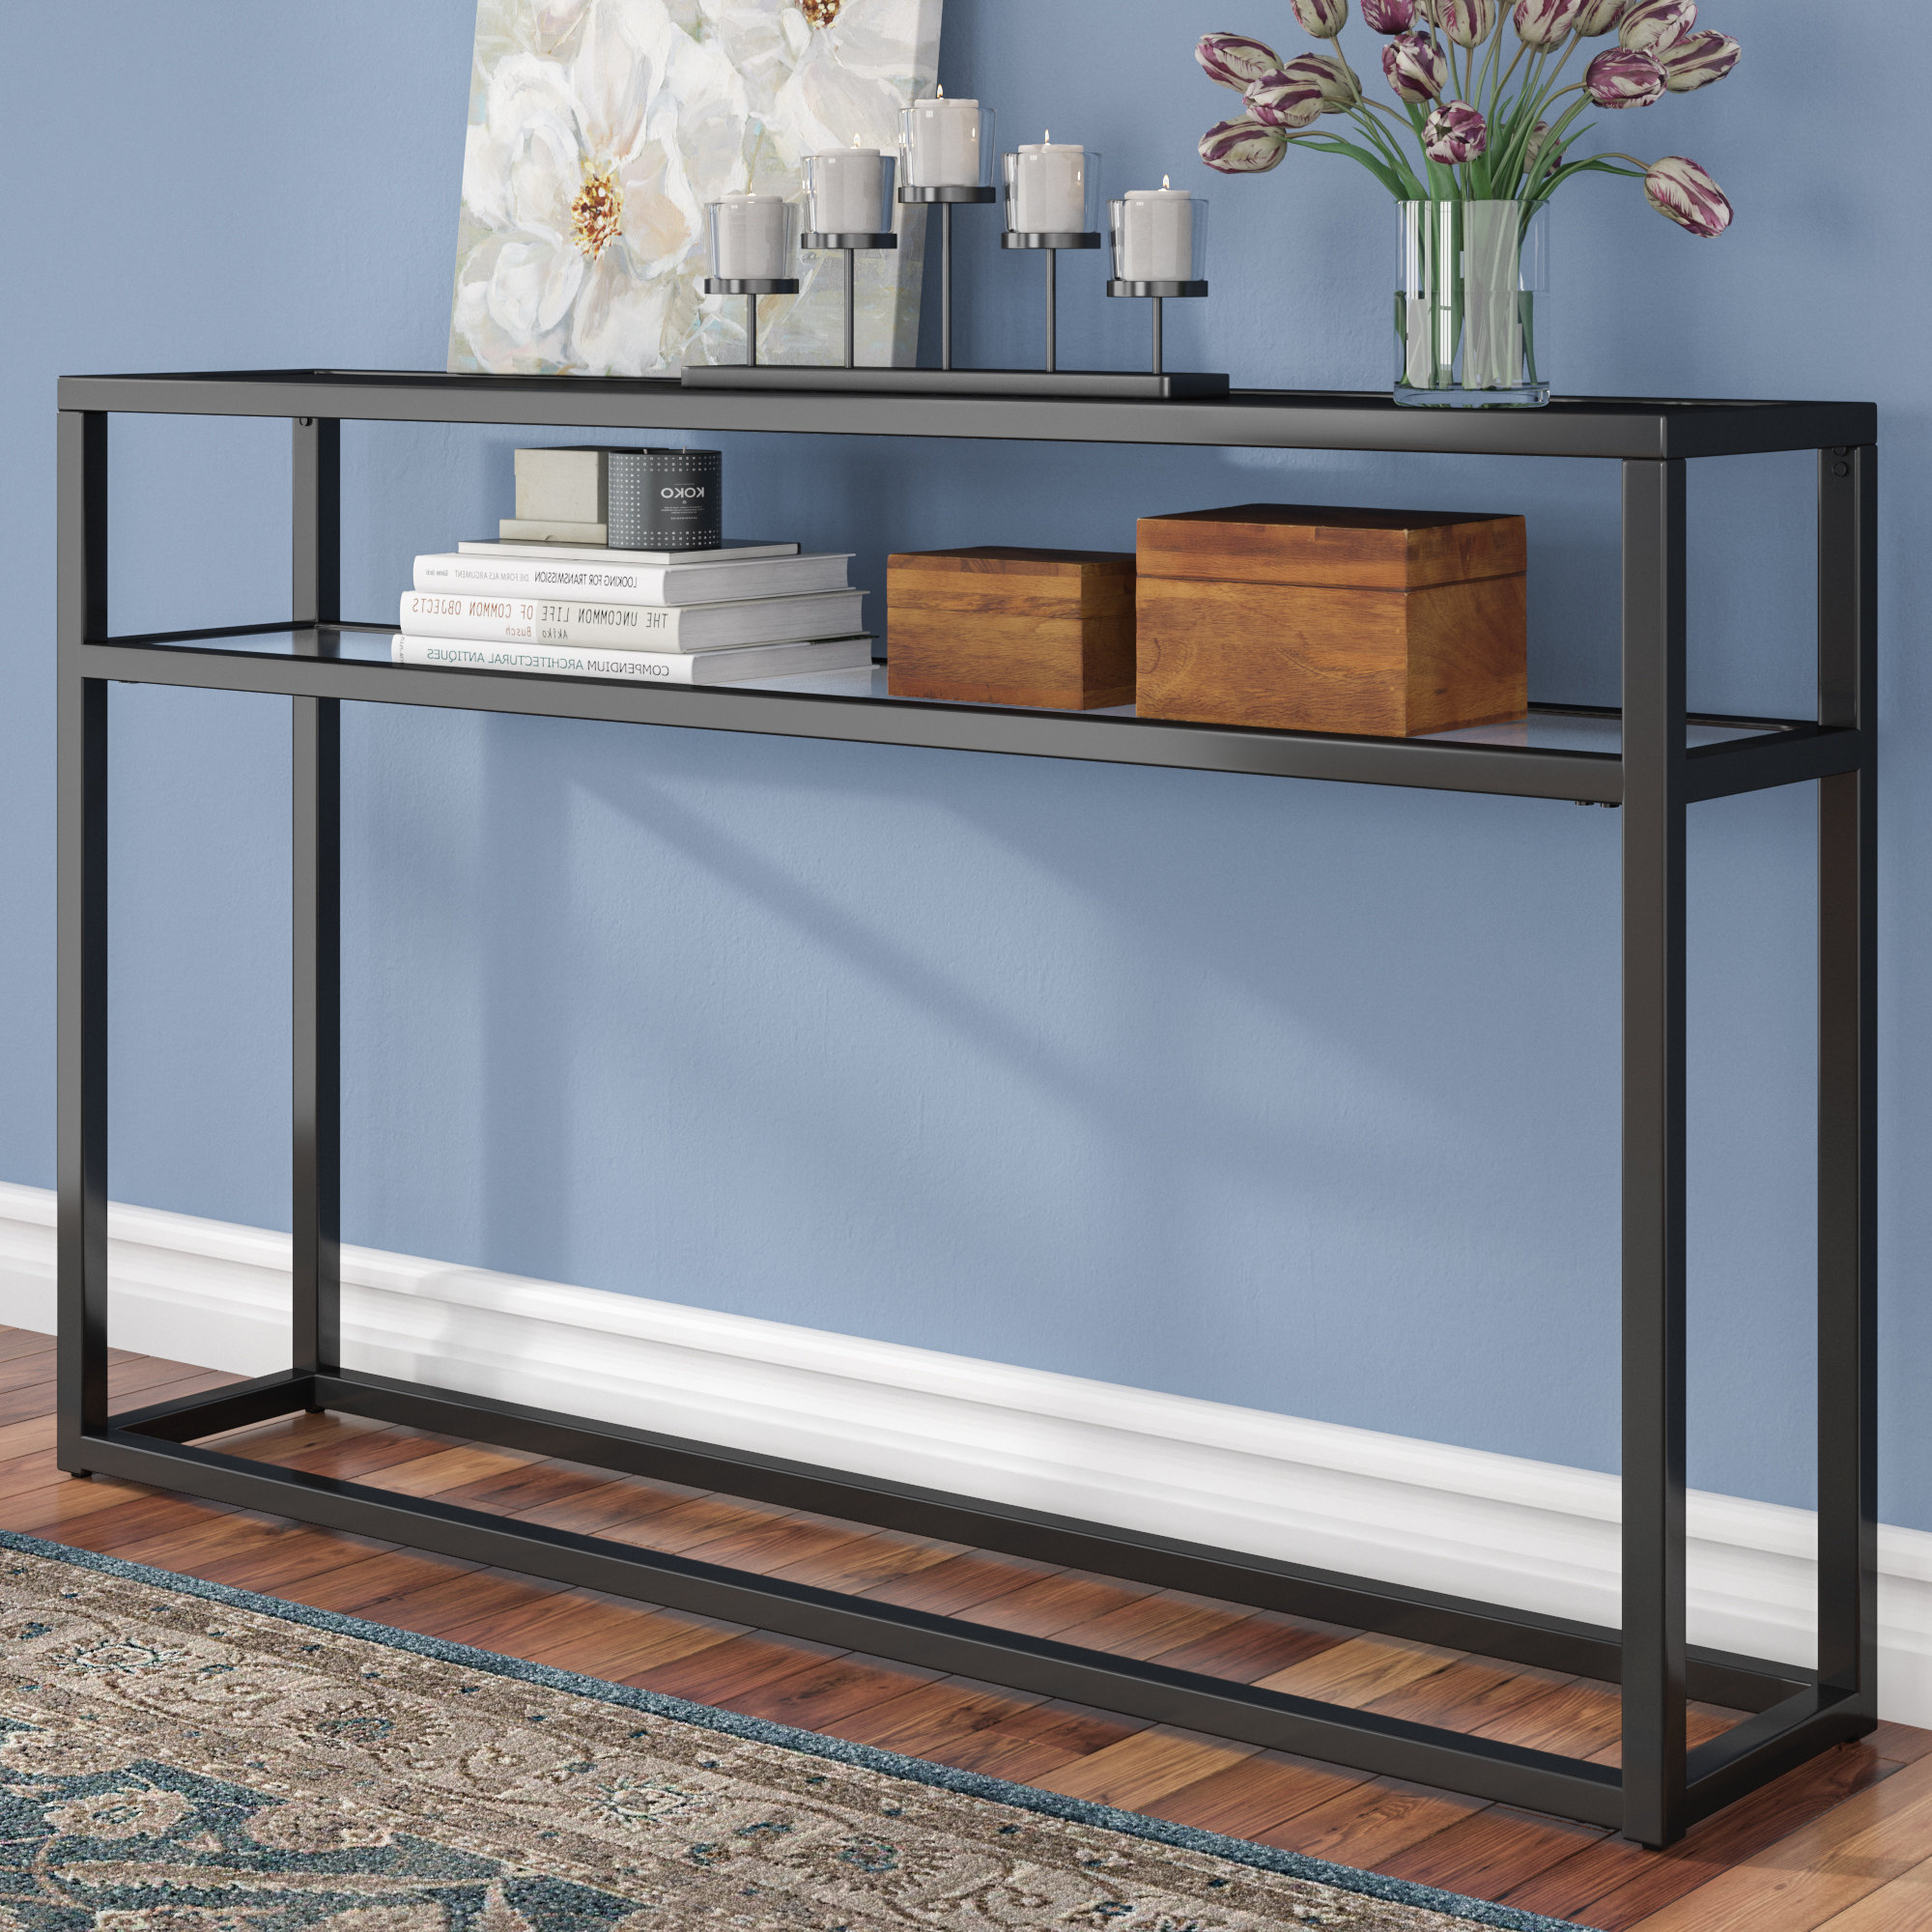 Wayfair Regarding Most Popular Natural Wood Mirrored Media Console Tables (View 16 of 20)